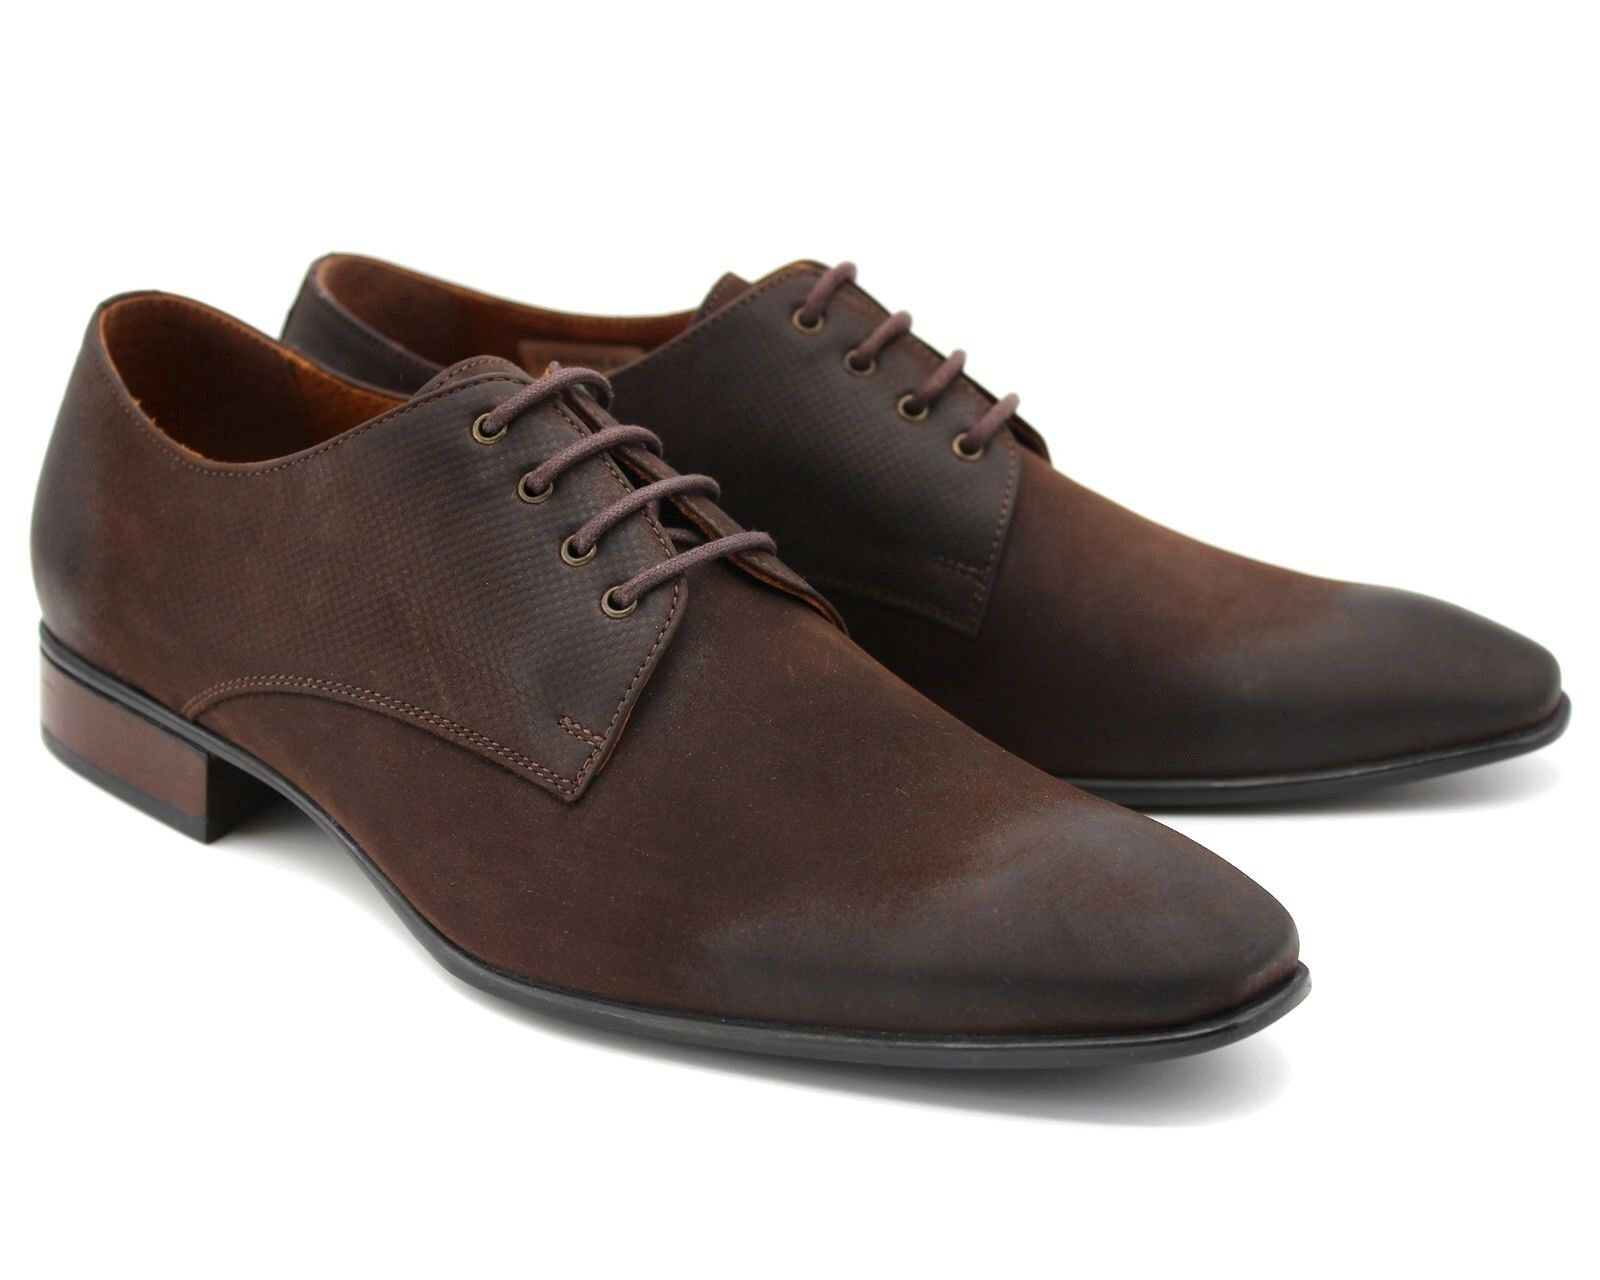 195 MENS BROWN REAL LEATHER SMART SHOES LACE UP OFFICE WORK WEDDING